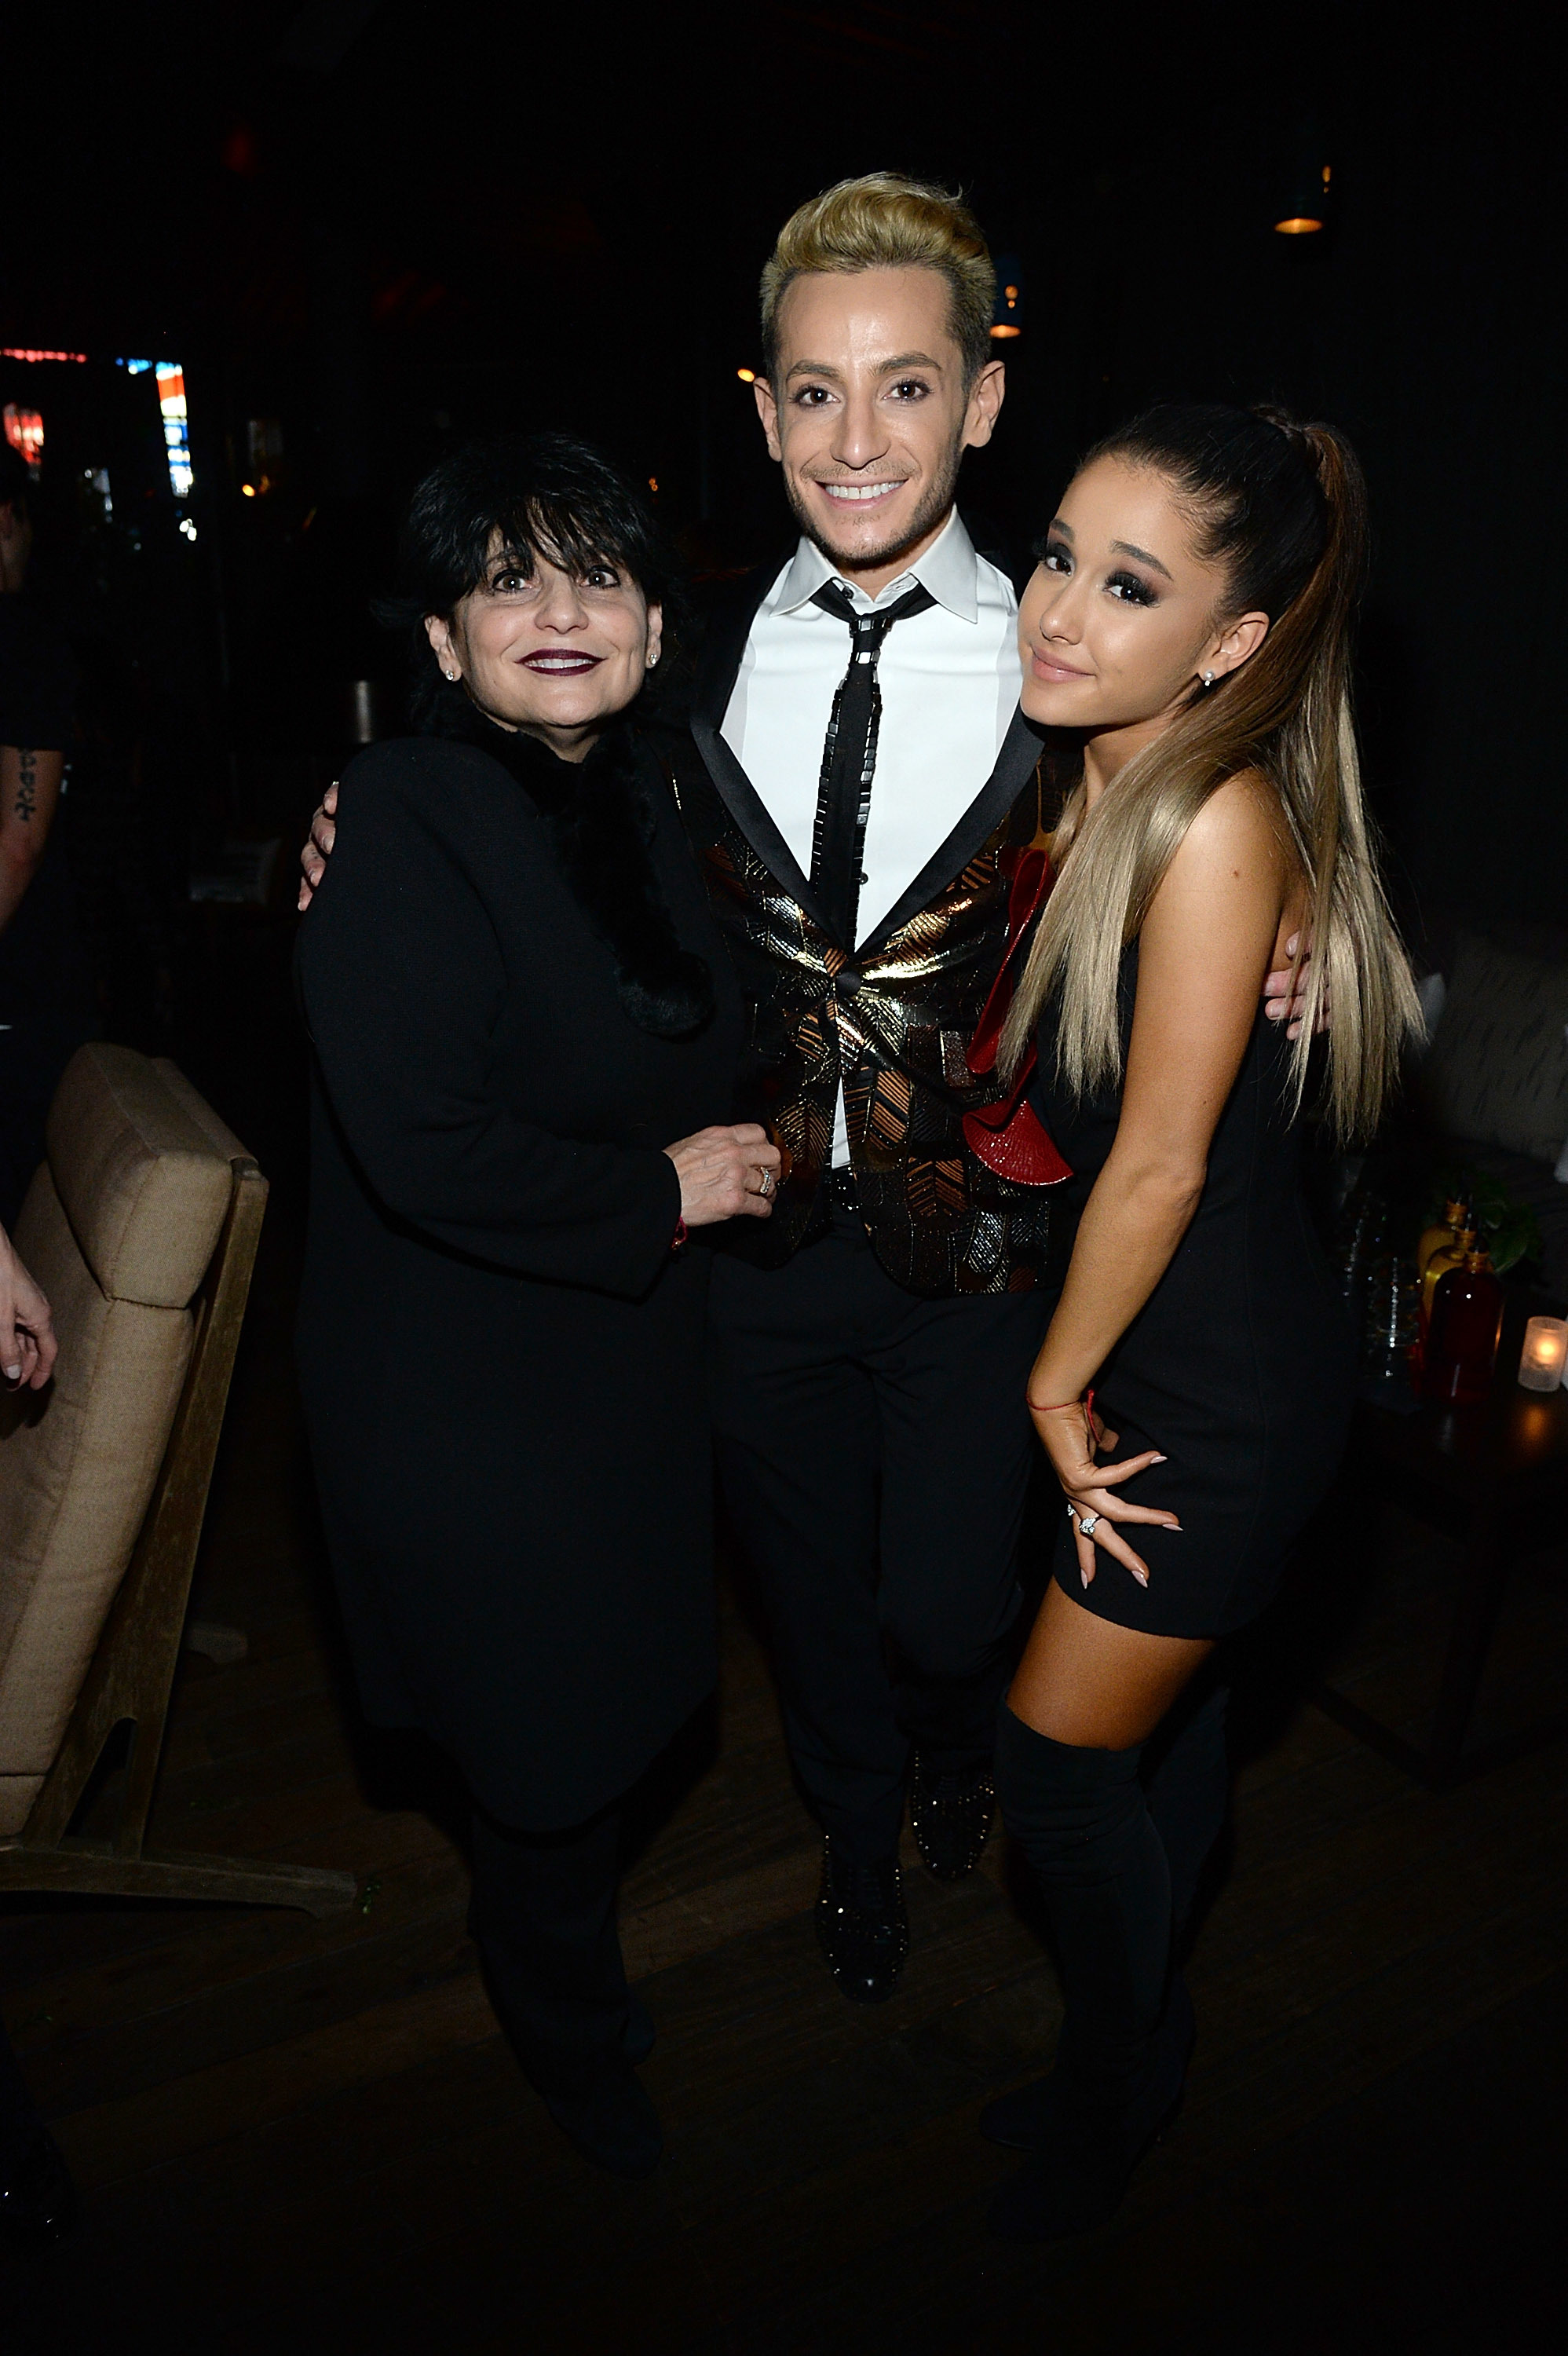 Joan Grande, Frankie Grande and Ariana Grande attend the Republic Records Grammy celebration at Hyde on Sunset in Los Angeles on Feb. 15, 2016.